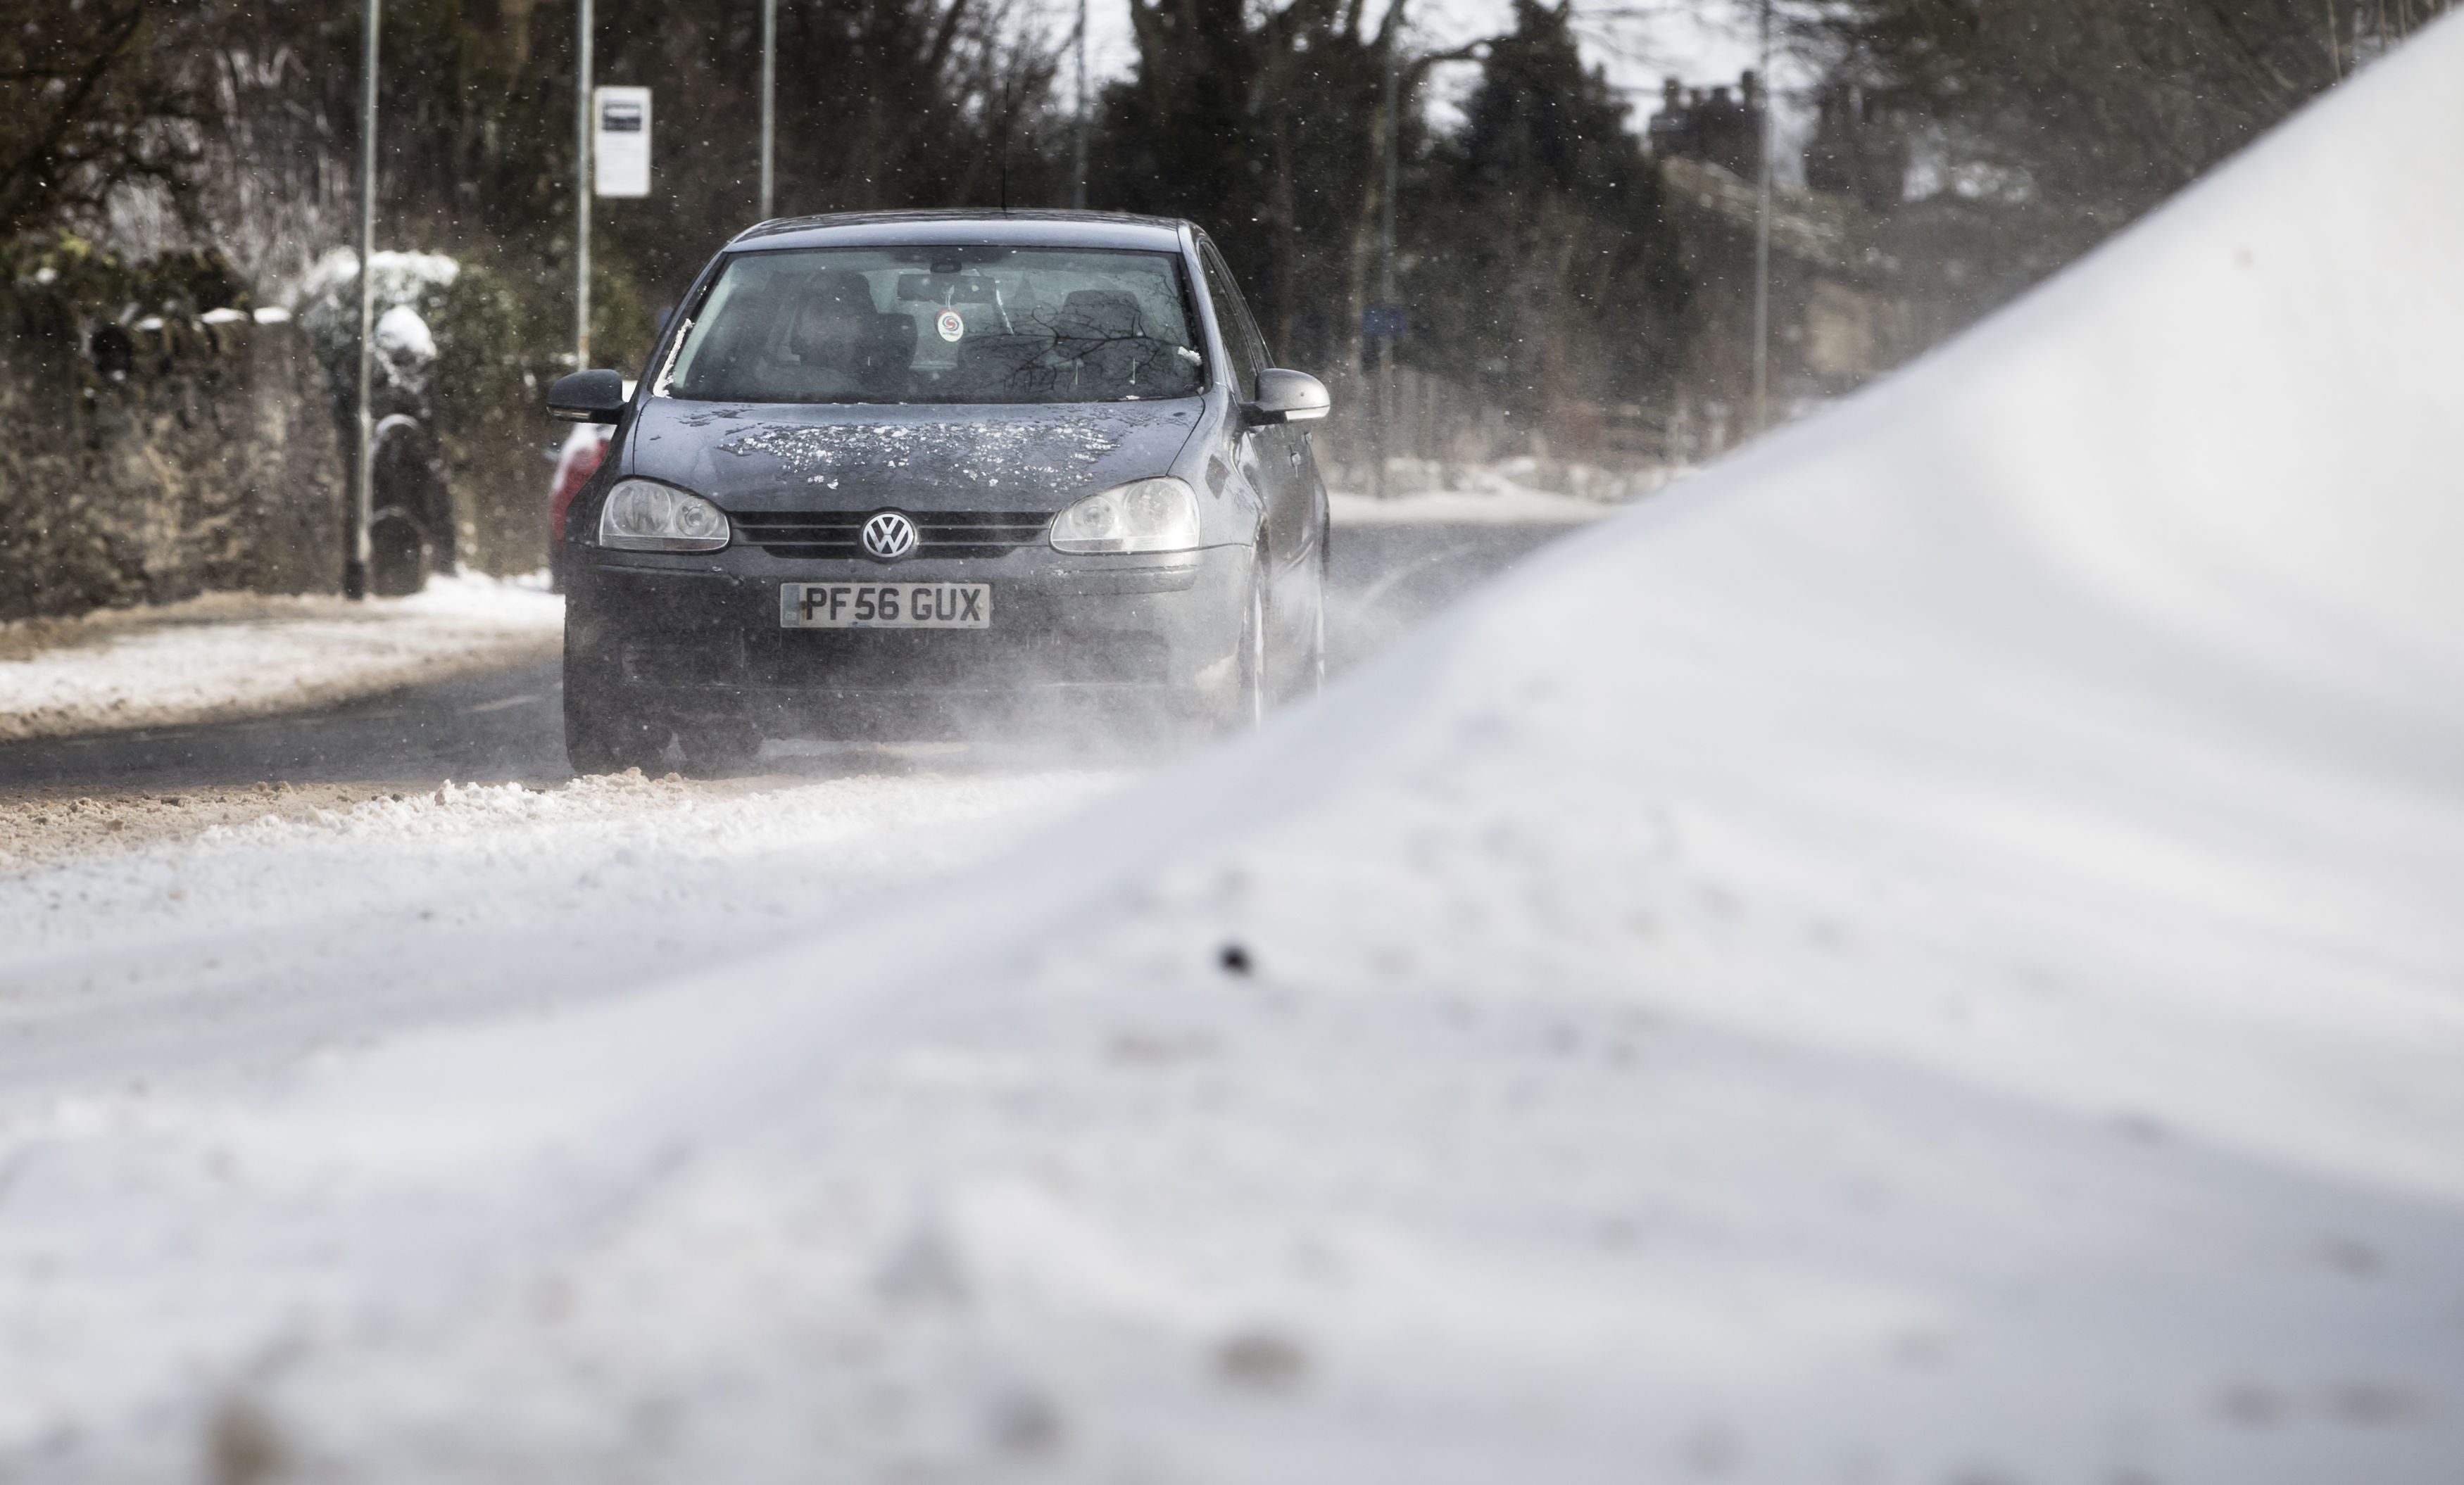 Parts of the UK could get up to 5cm of snow by next week. Credit: PA